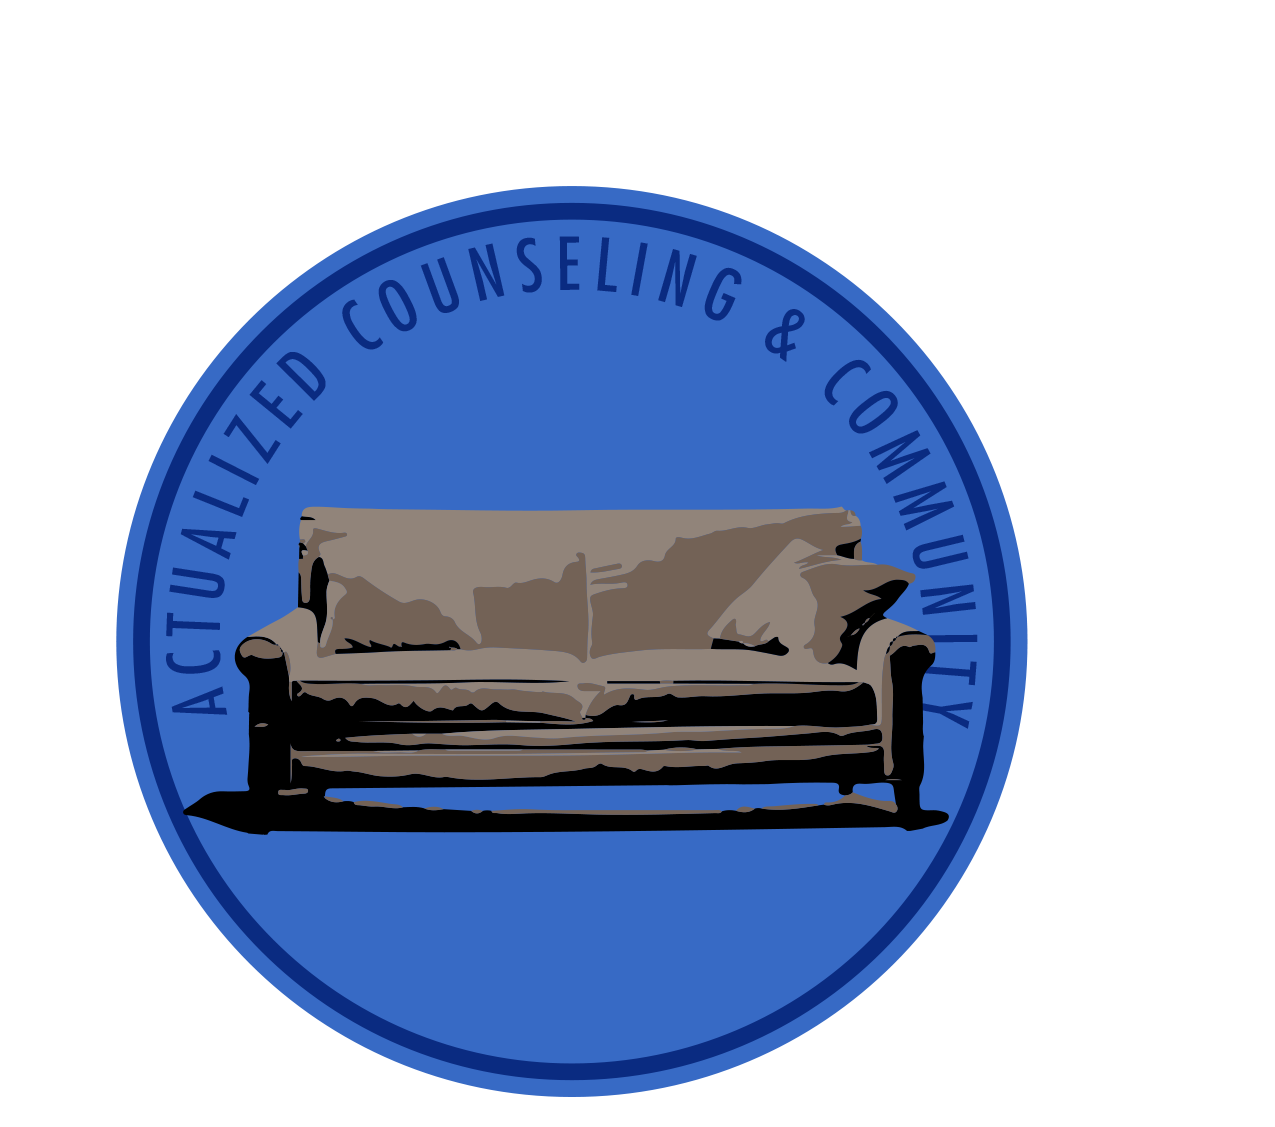 Actualized Counseling & Community